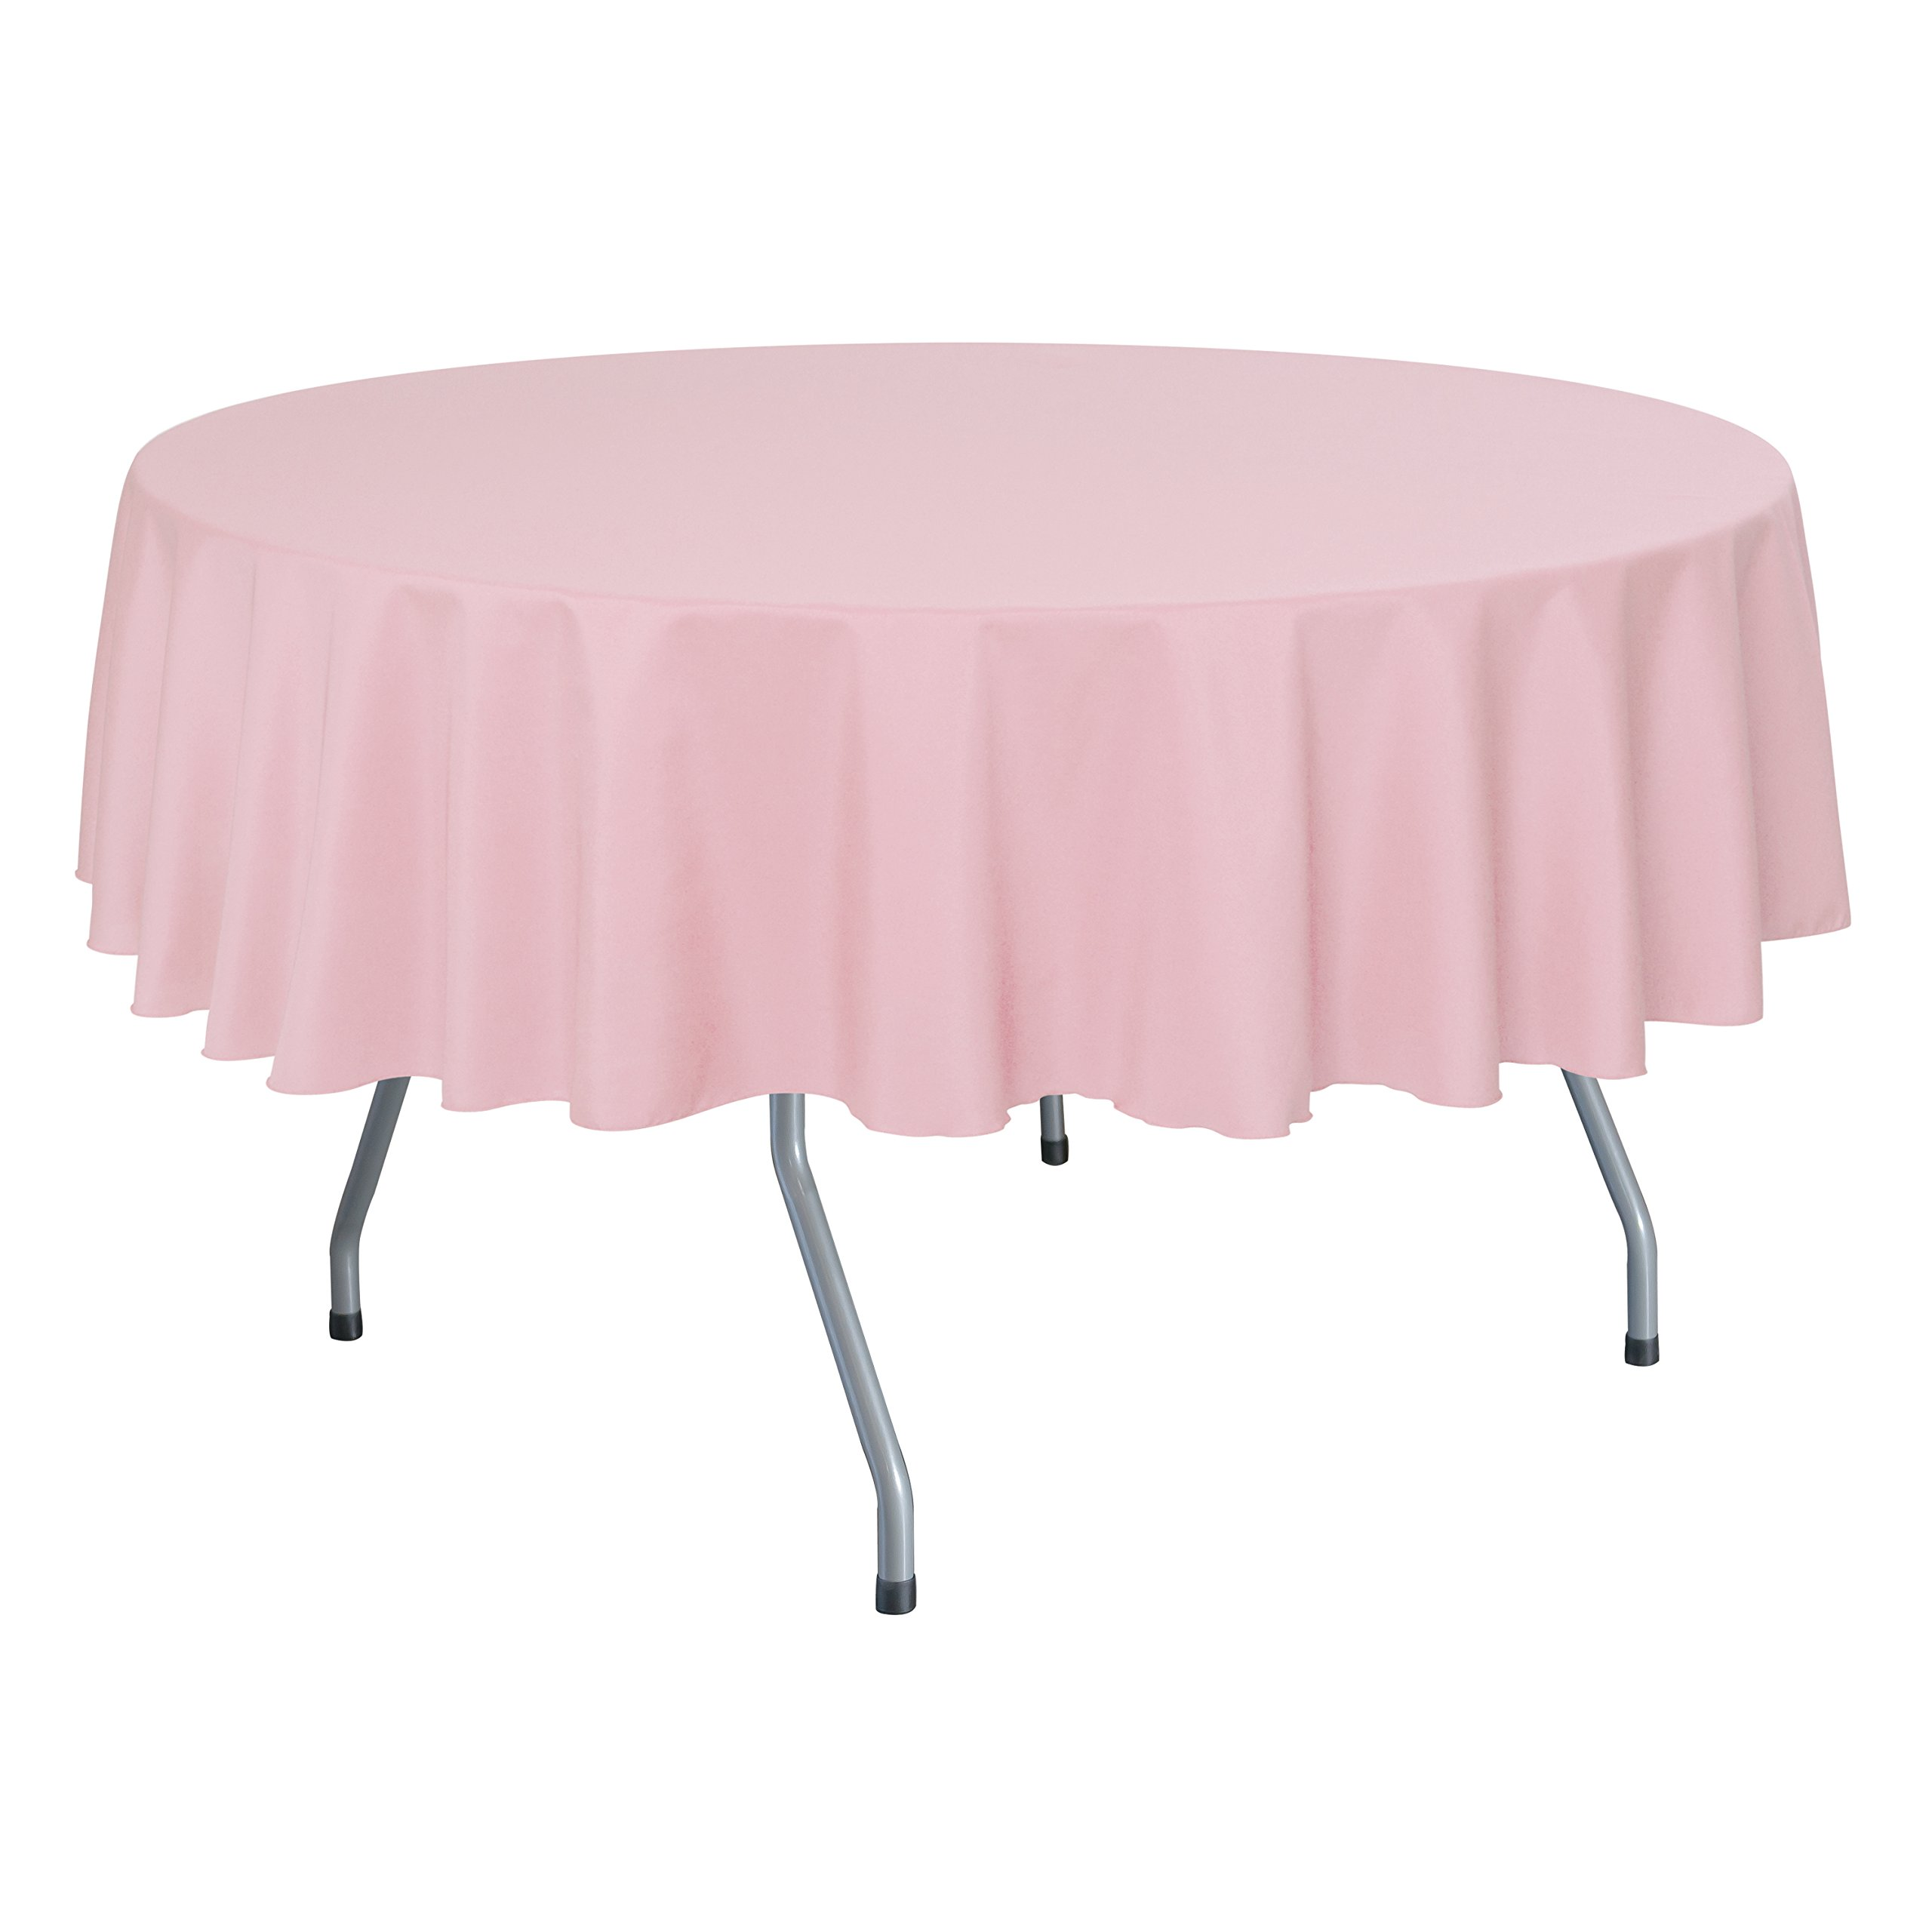 Ultimate Textile (10 Pack) 72-Inch Round Polyester Linen Tablecloth - for Wedding, Restaurant or Banquet use, Light Pink